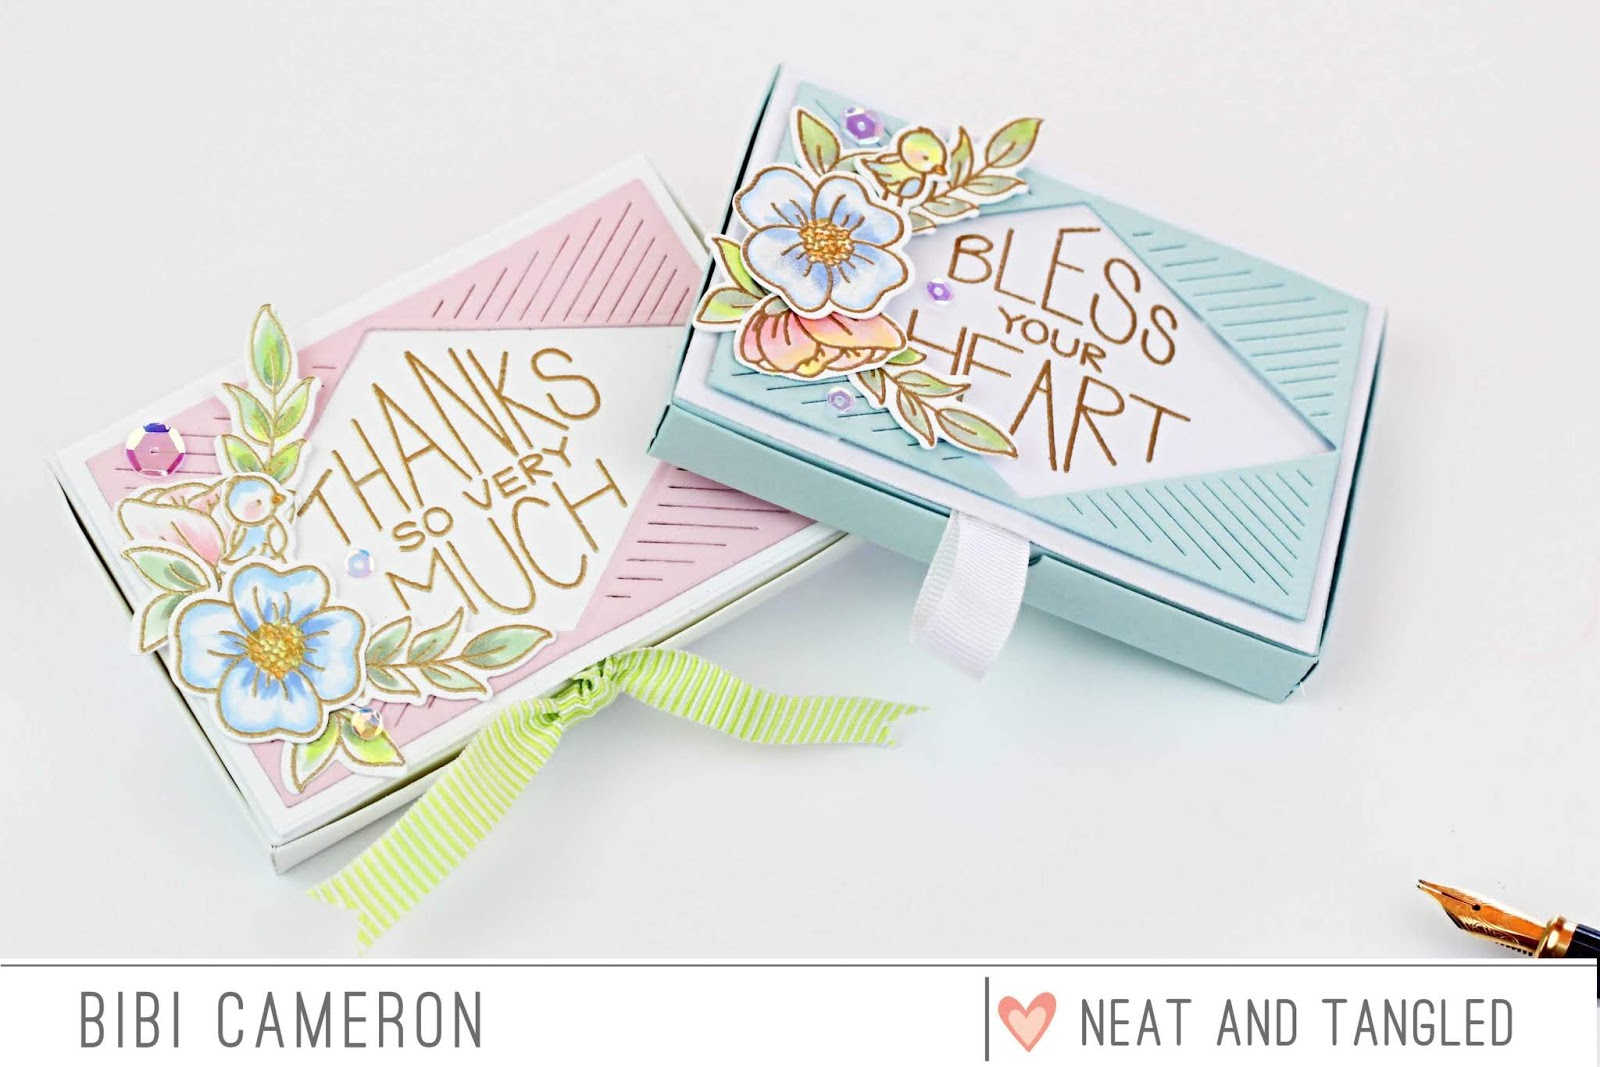 GIft Card Box with pop up gift card holder | New Neat and Tangled Release